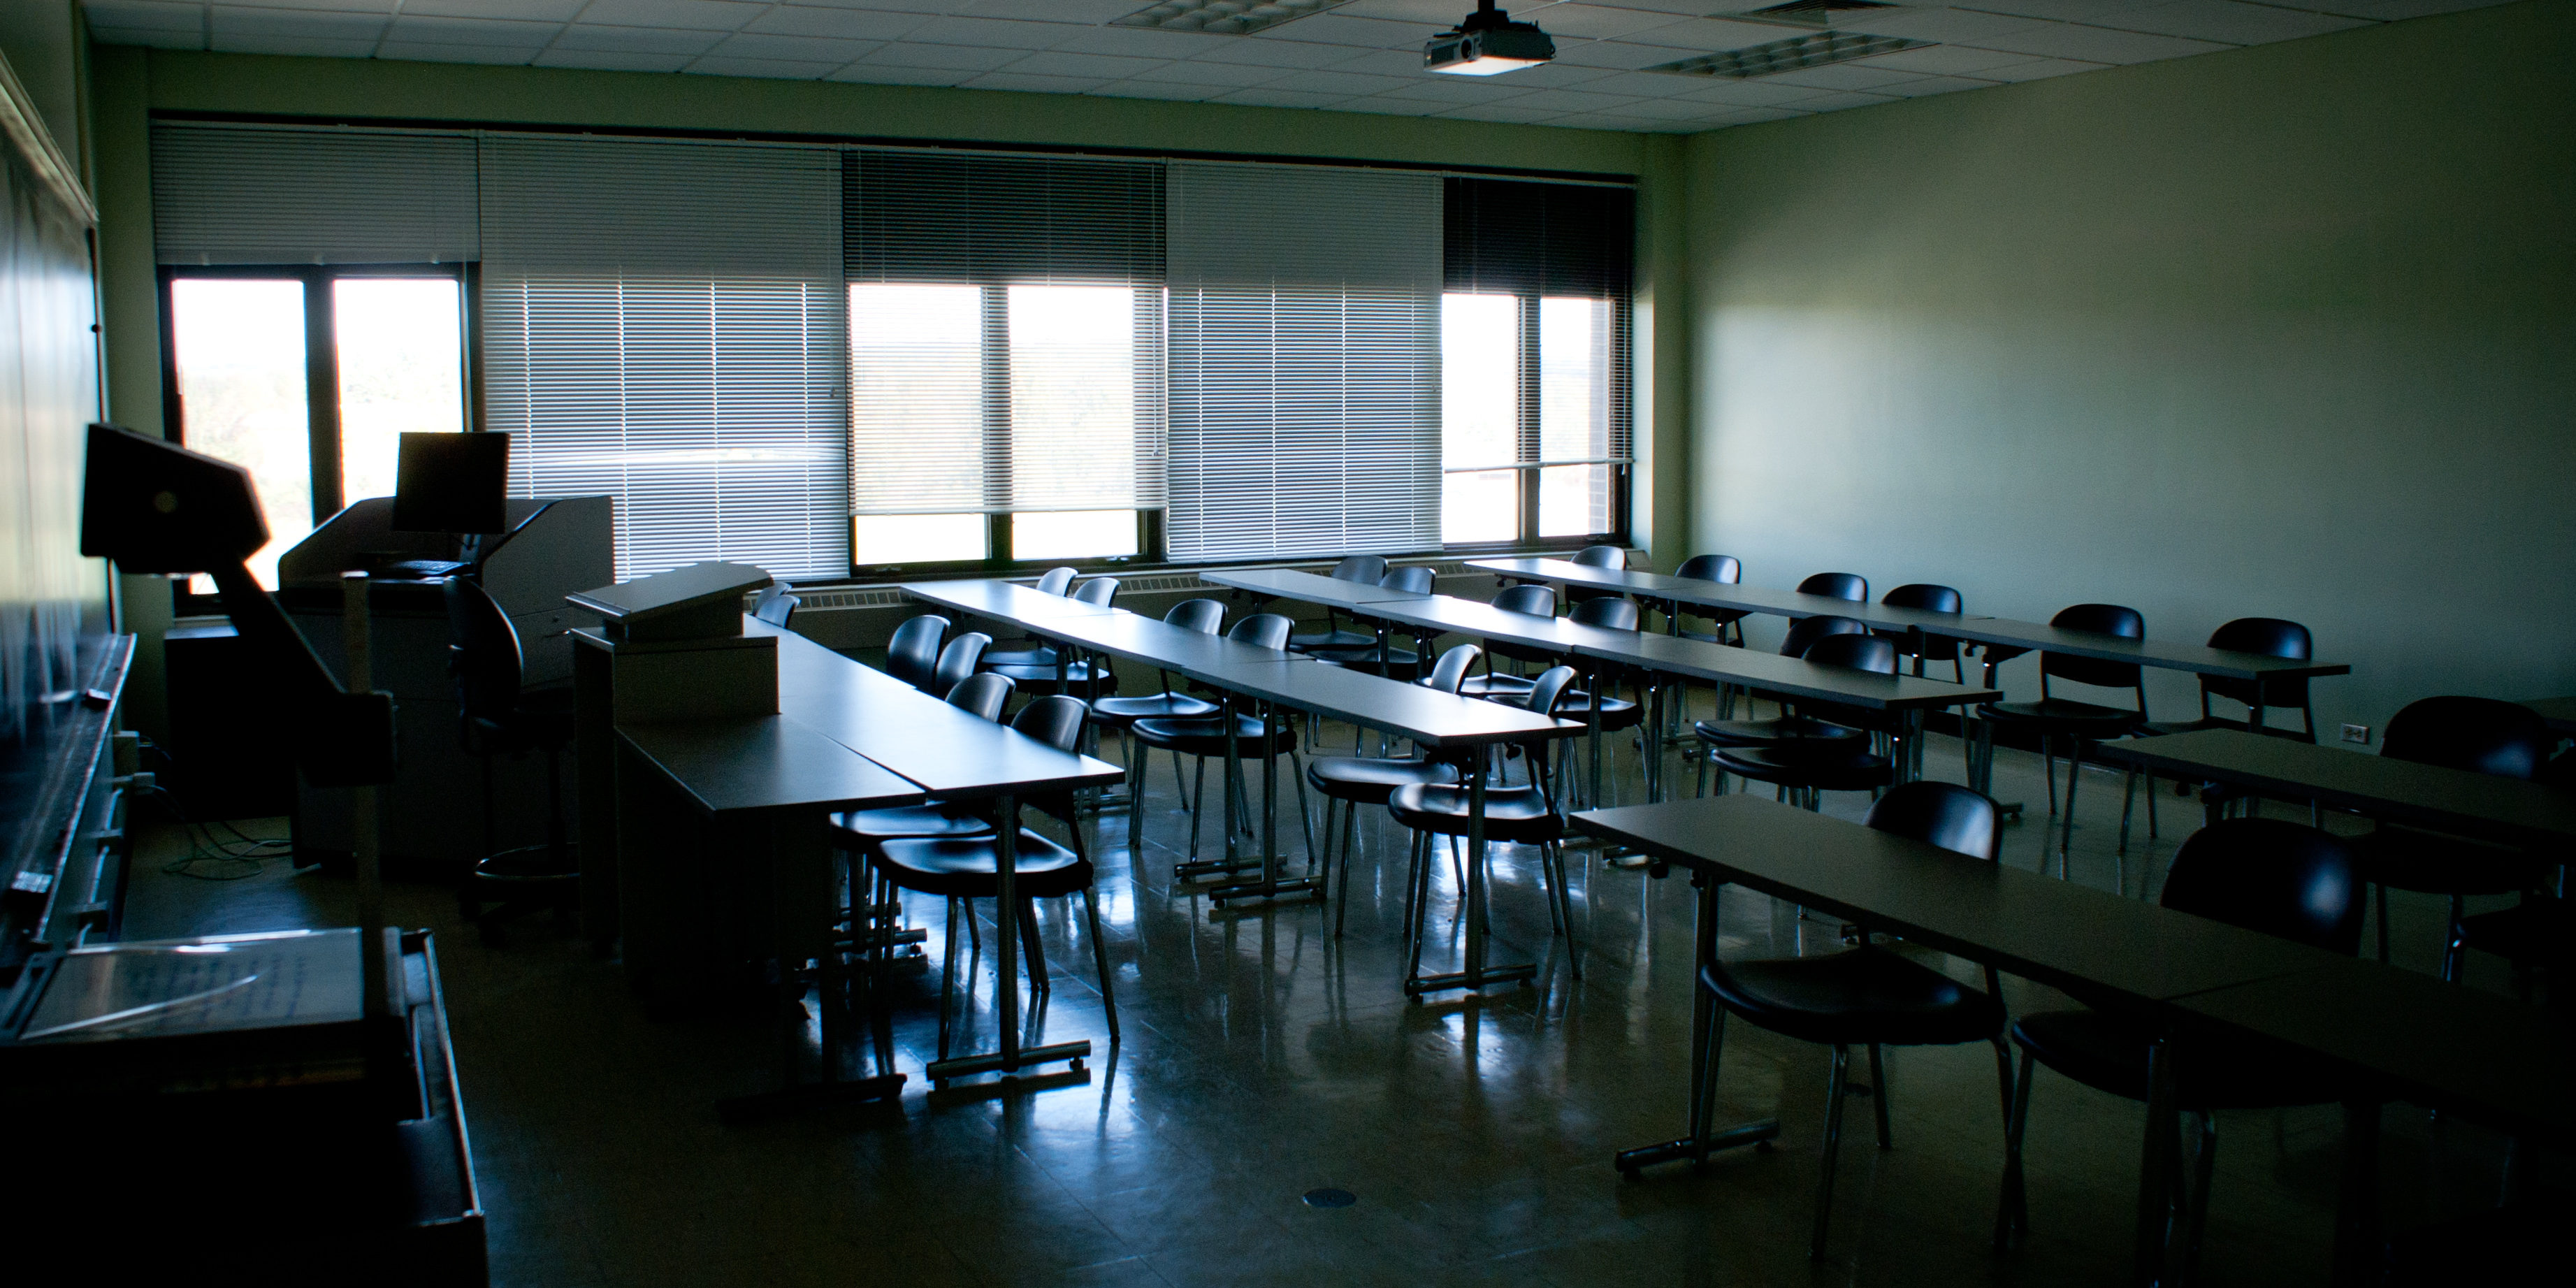 Image of an empty classroom in the mid afternoon. The room is in blue shadows with sunlight coming through the windows. The many chairs and desks are empty.